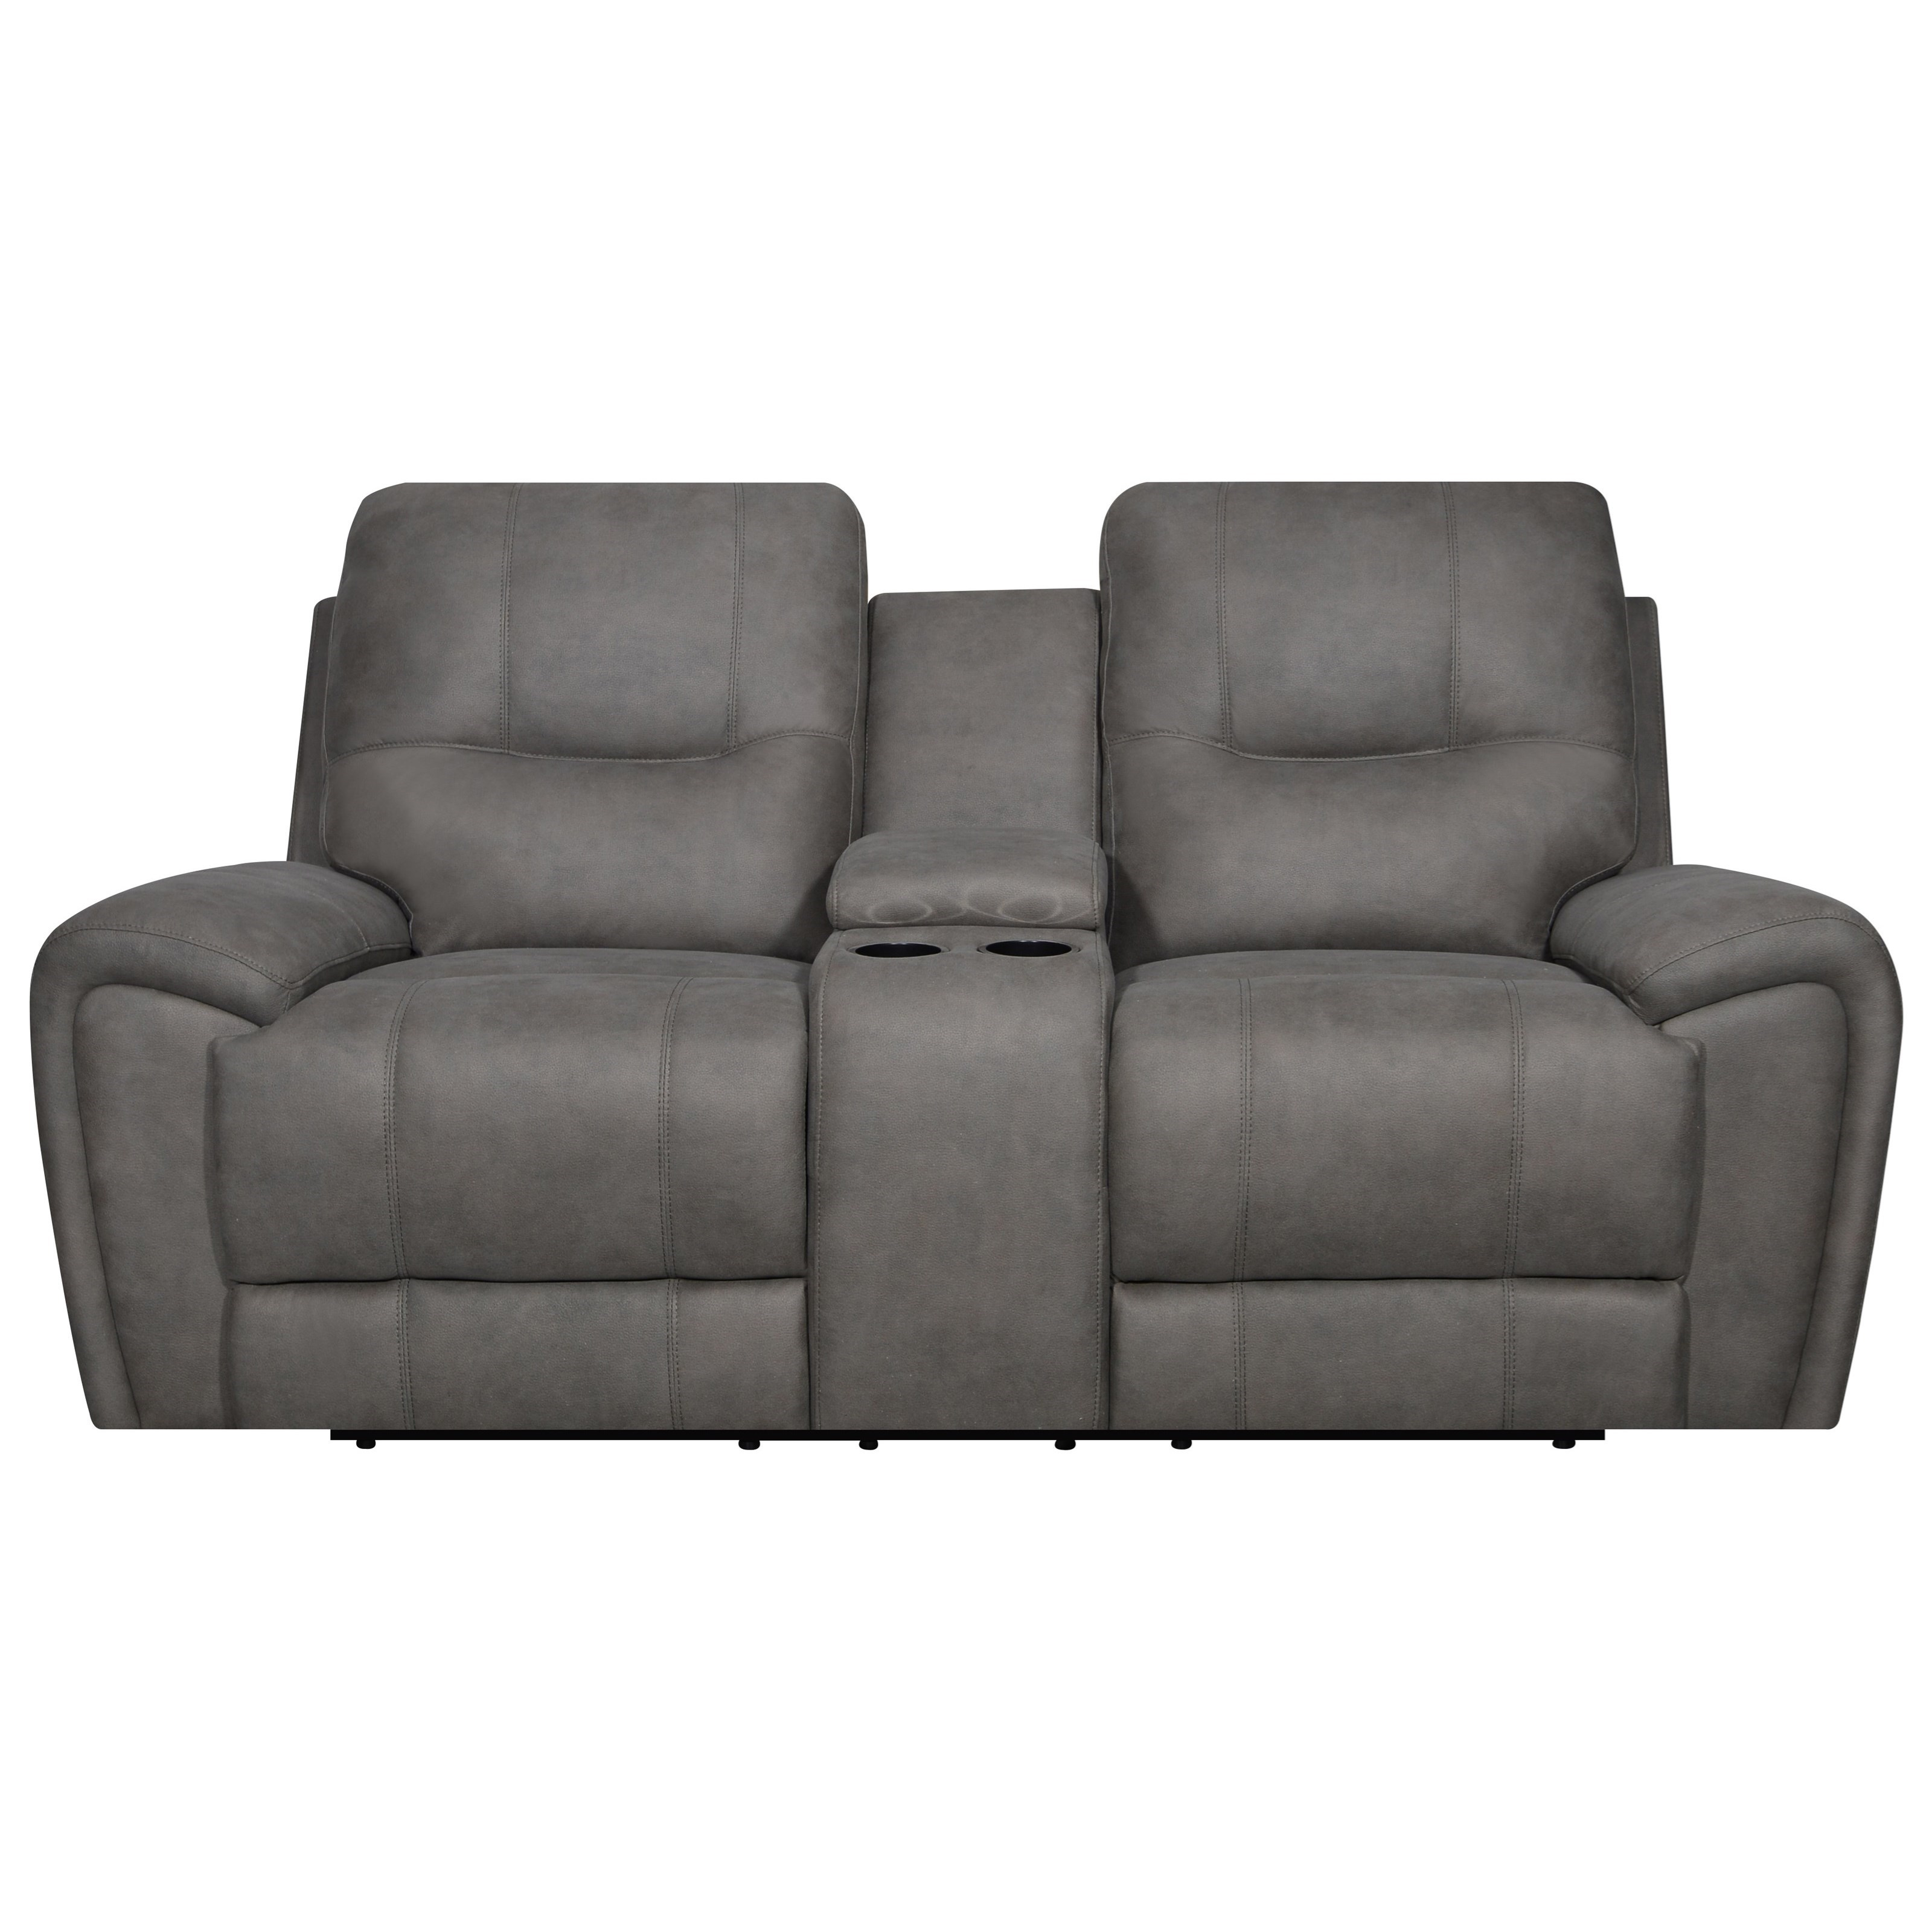 Gavin Power Console Reclining Loveseat by Klaussner International at Northeast Factory Direct